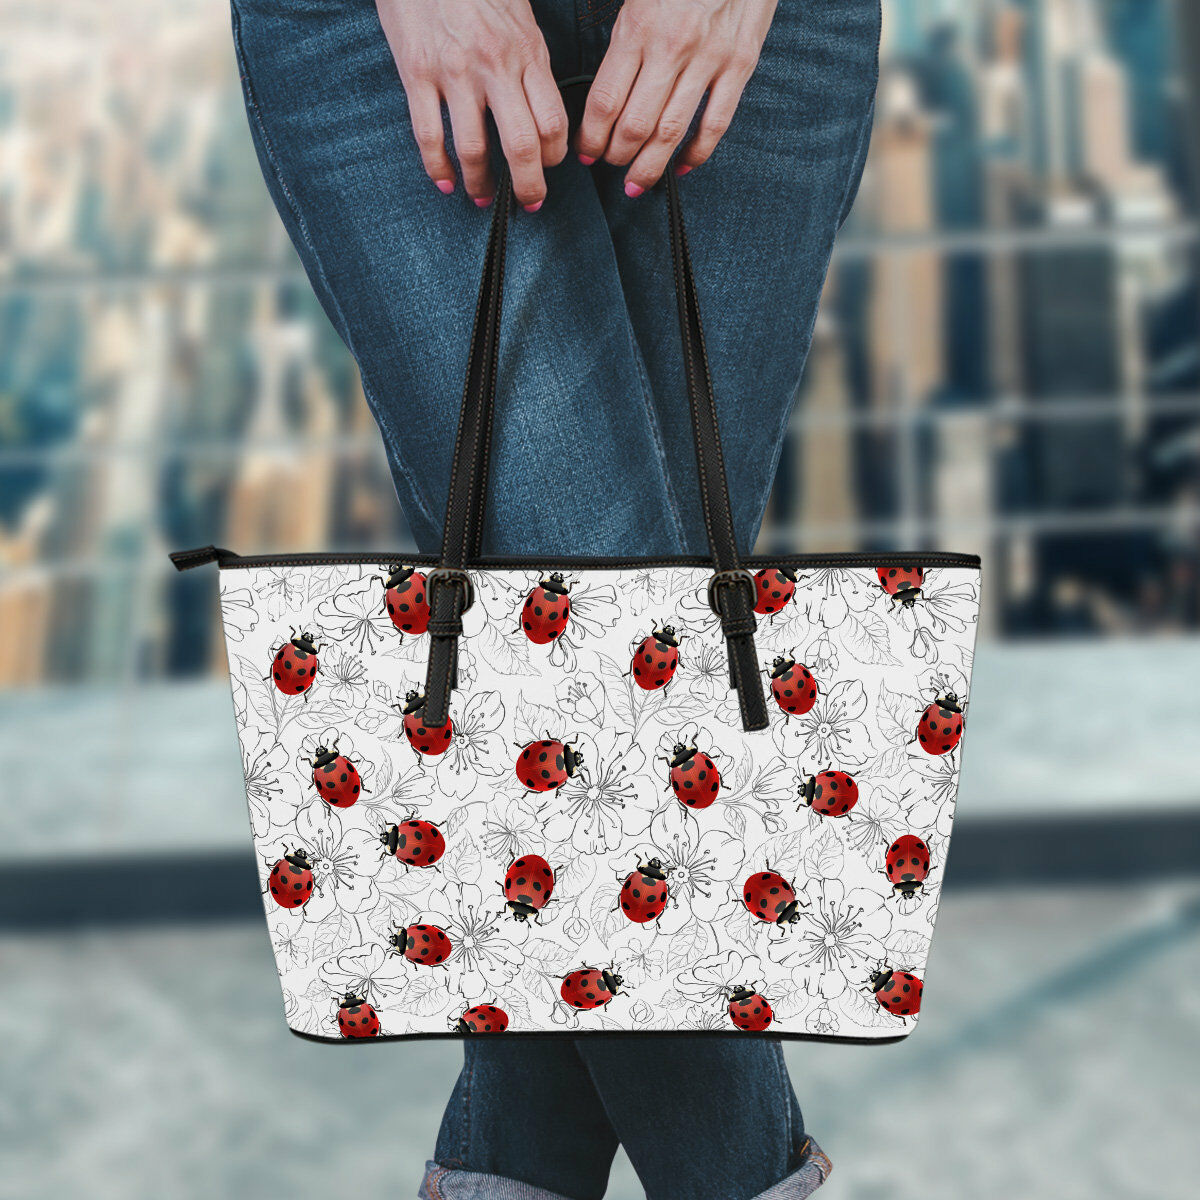 Ladybugs & Flowers Book Beach Shopping PU Leather Tote Bag, Ladybird Market Bag